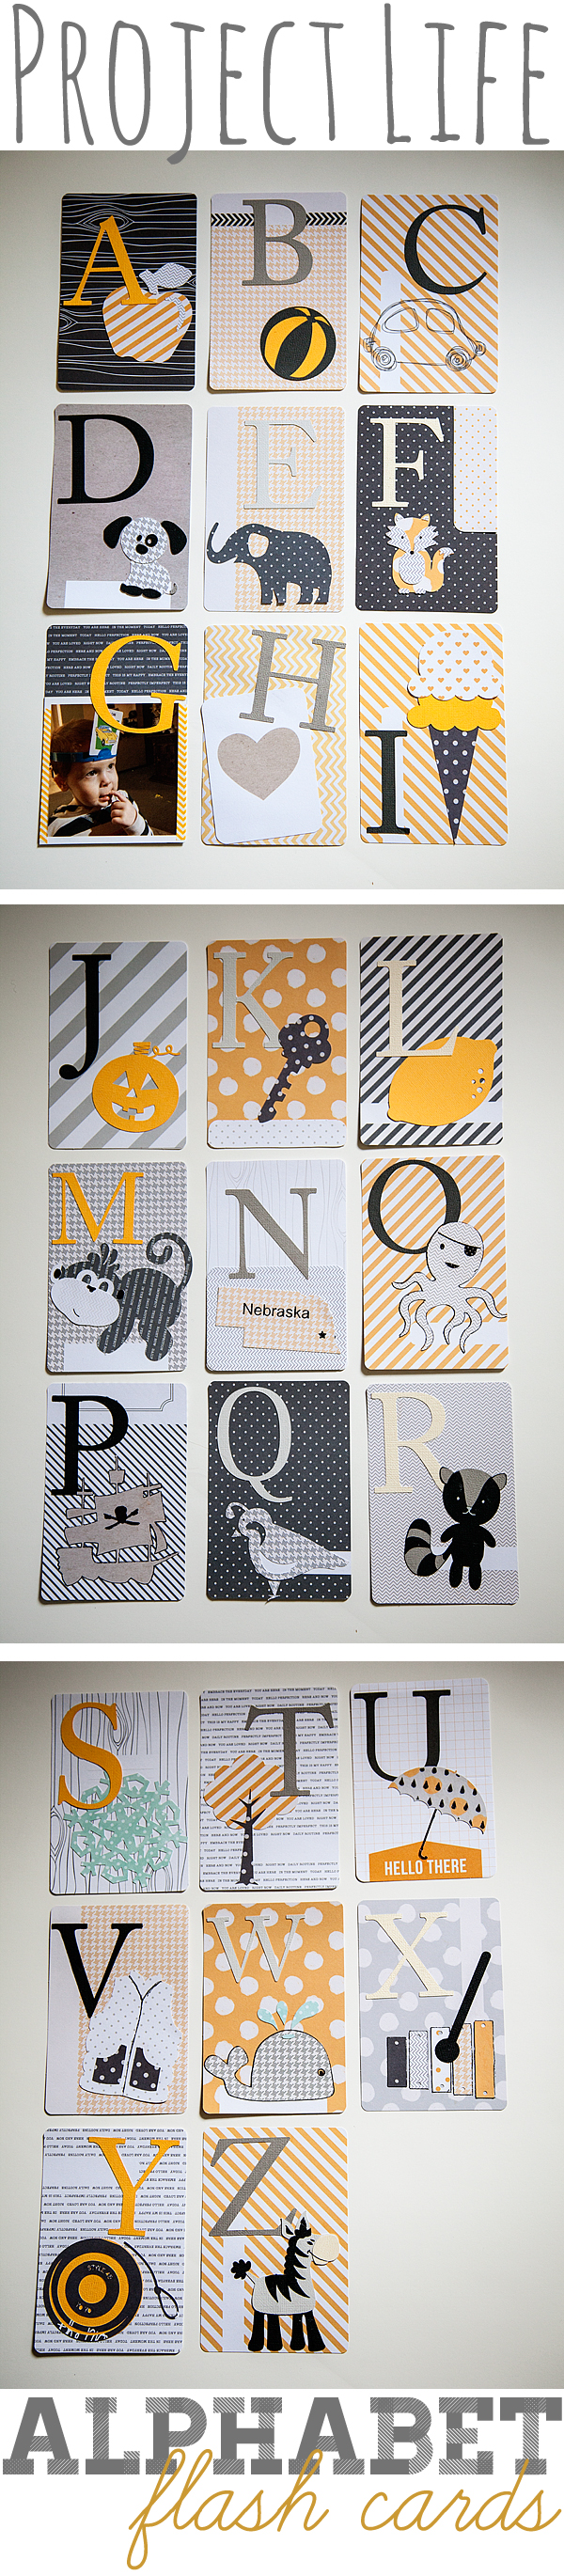 Alphabet Flash Cards by WhipperBerry